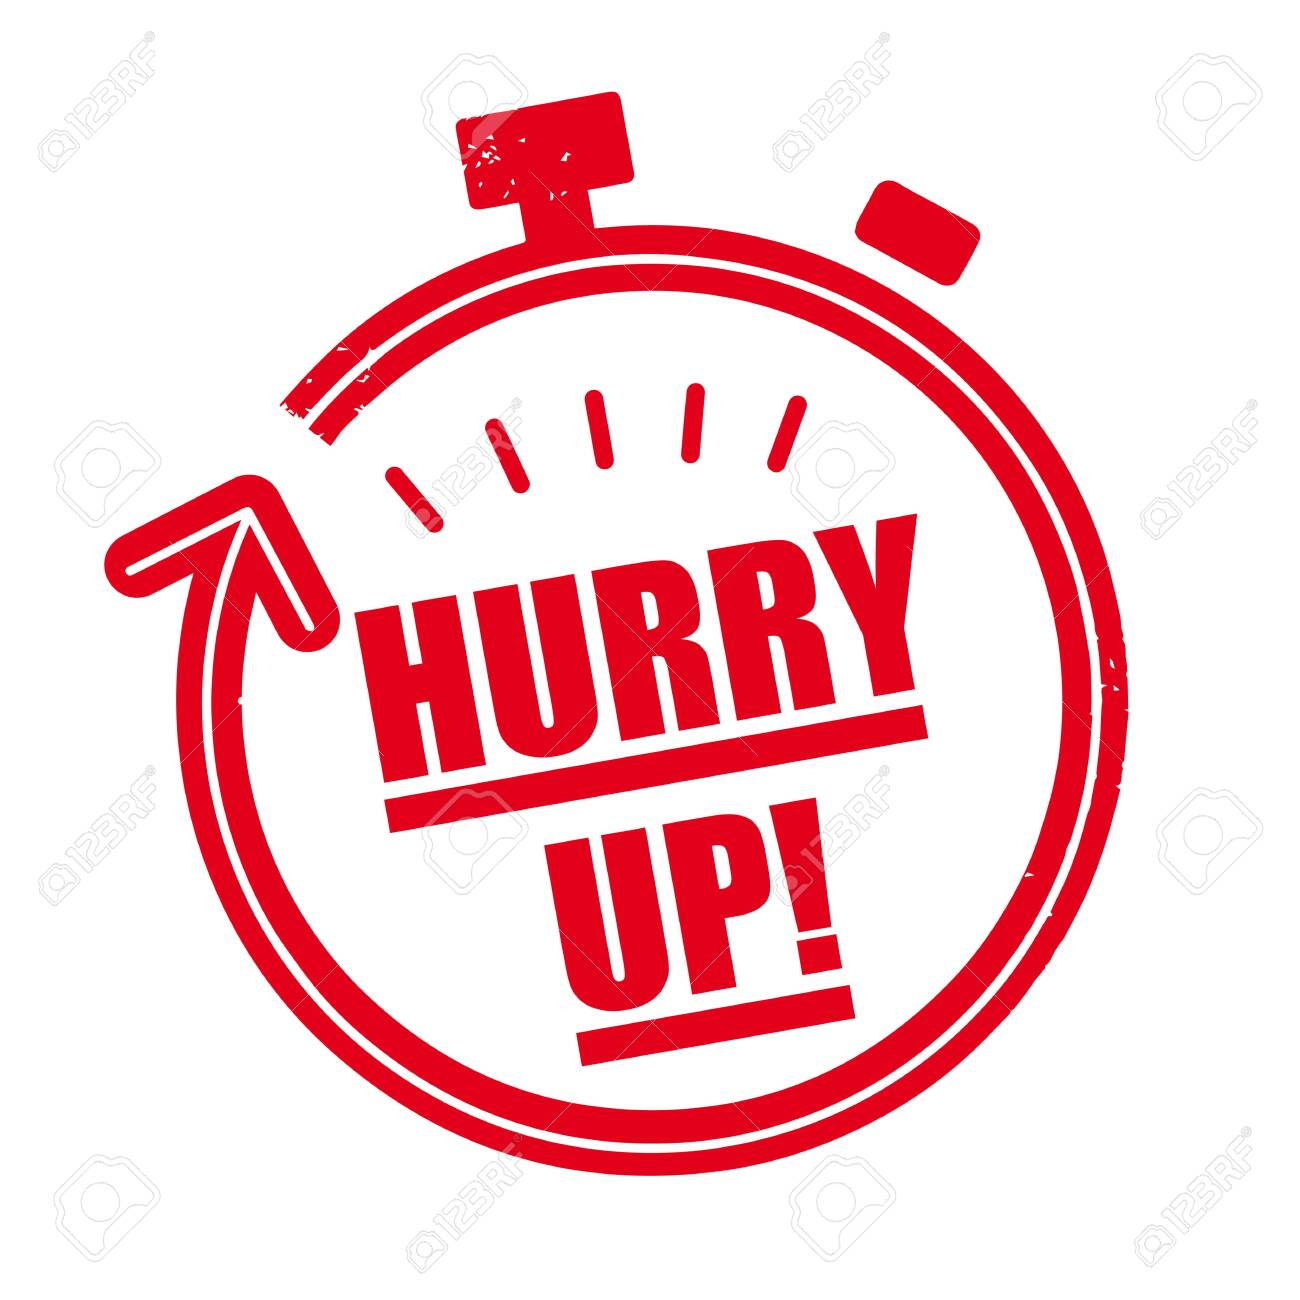 Hurry up - vector illustration red rubber stamp concept - 143799290